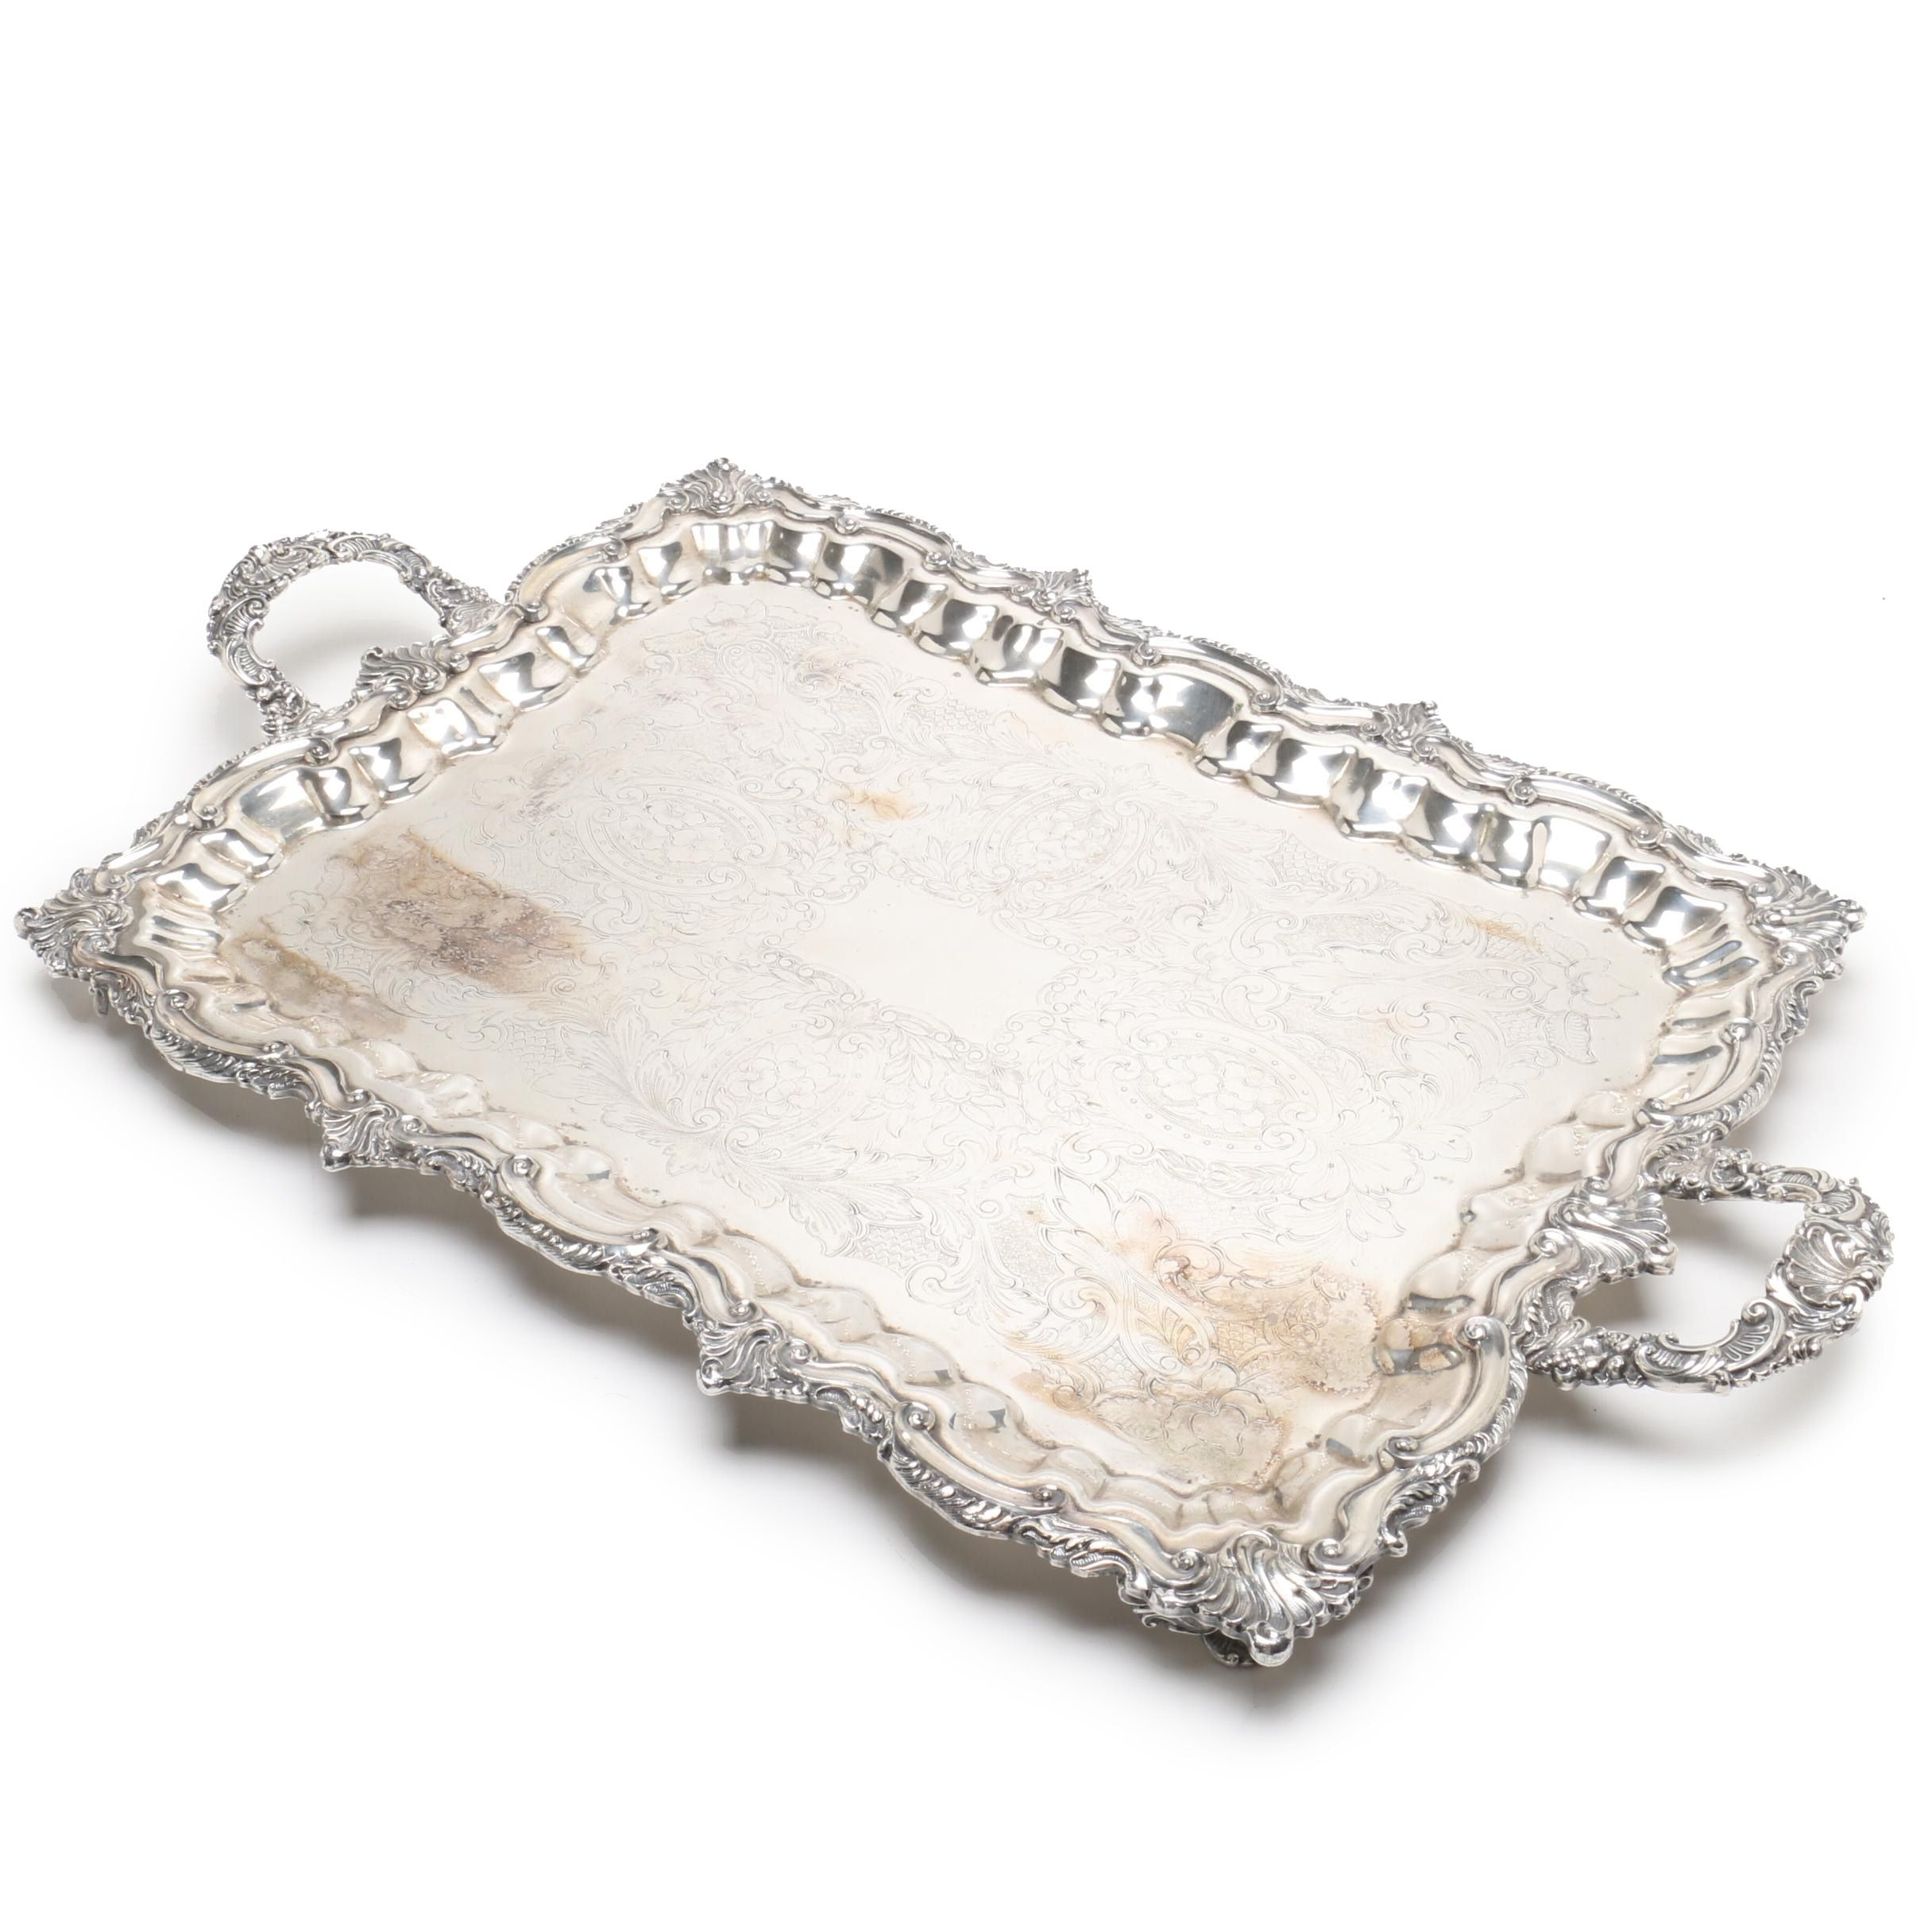 Silver Plate Coffee Tray